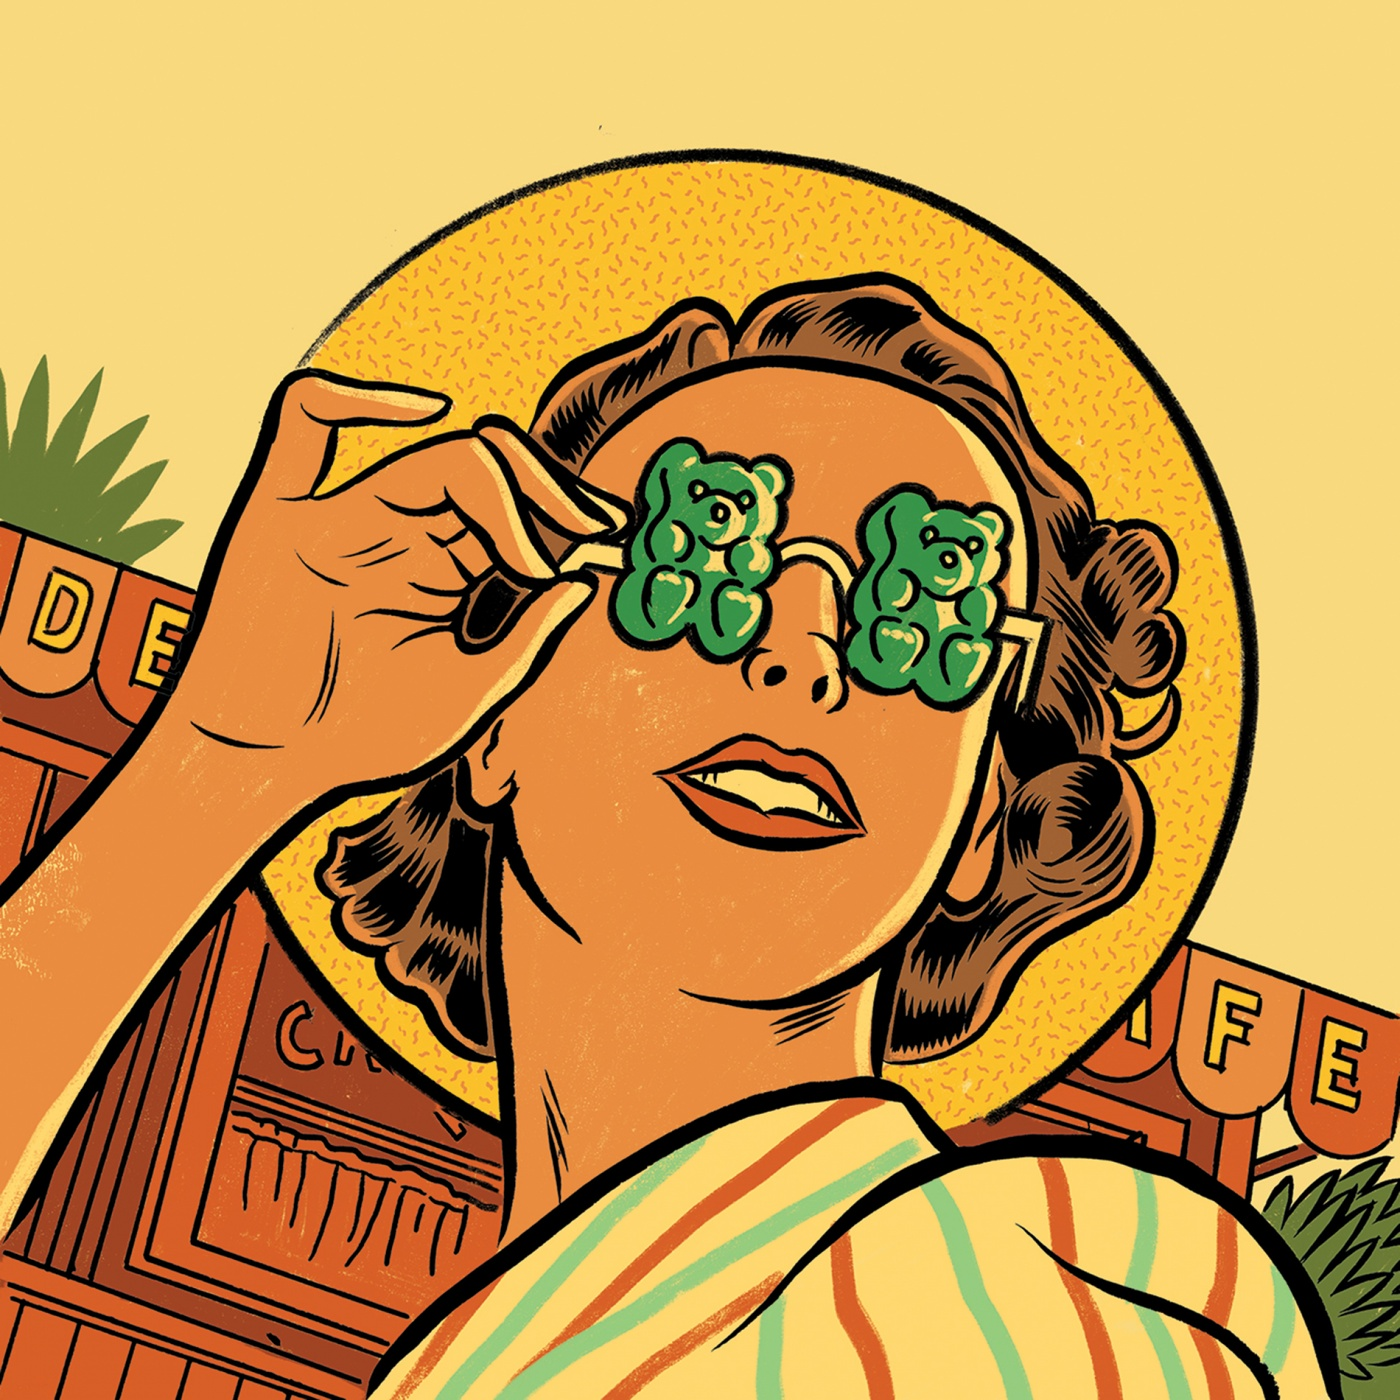 Illustration of a woman wearing sunglasses that have gummy bear lenses